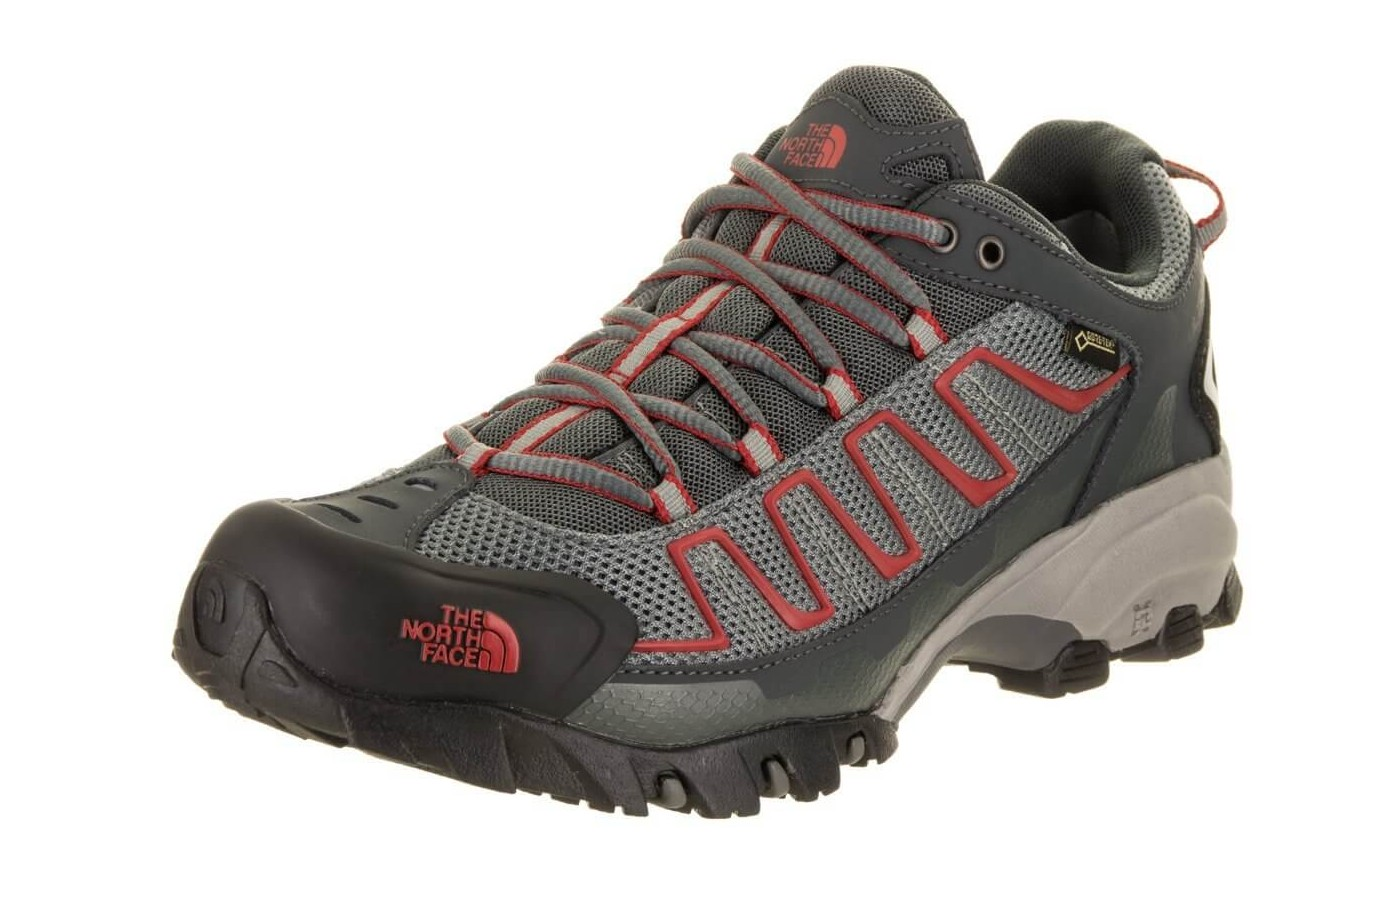 The The North Face Ultra 110 GTX features a mesh upper